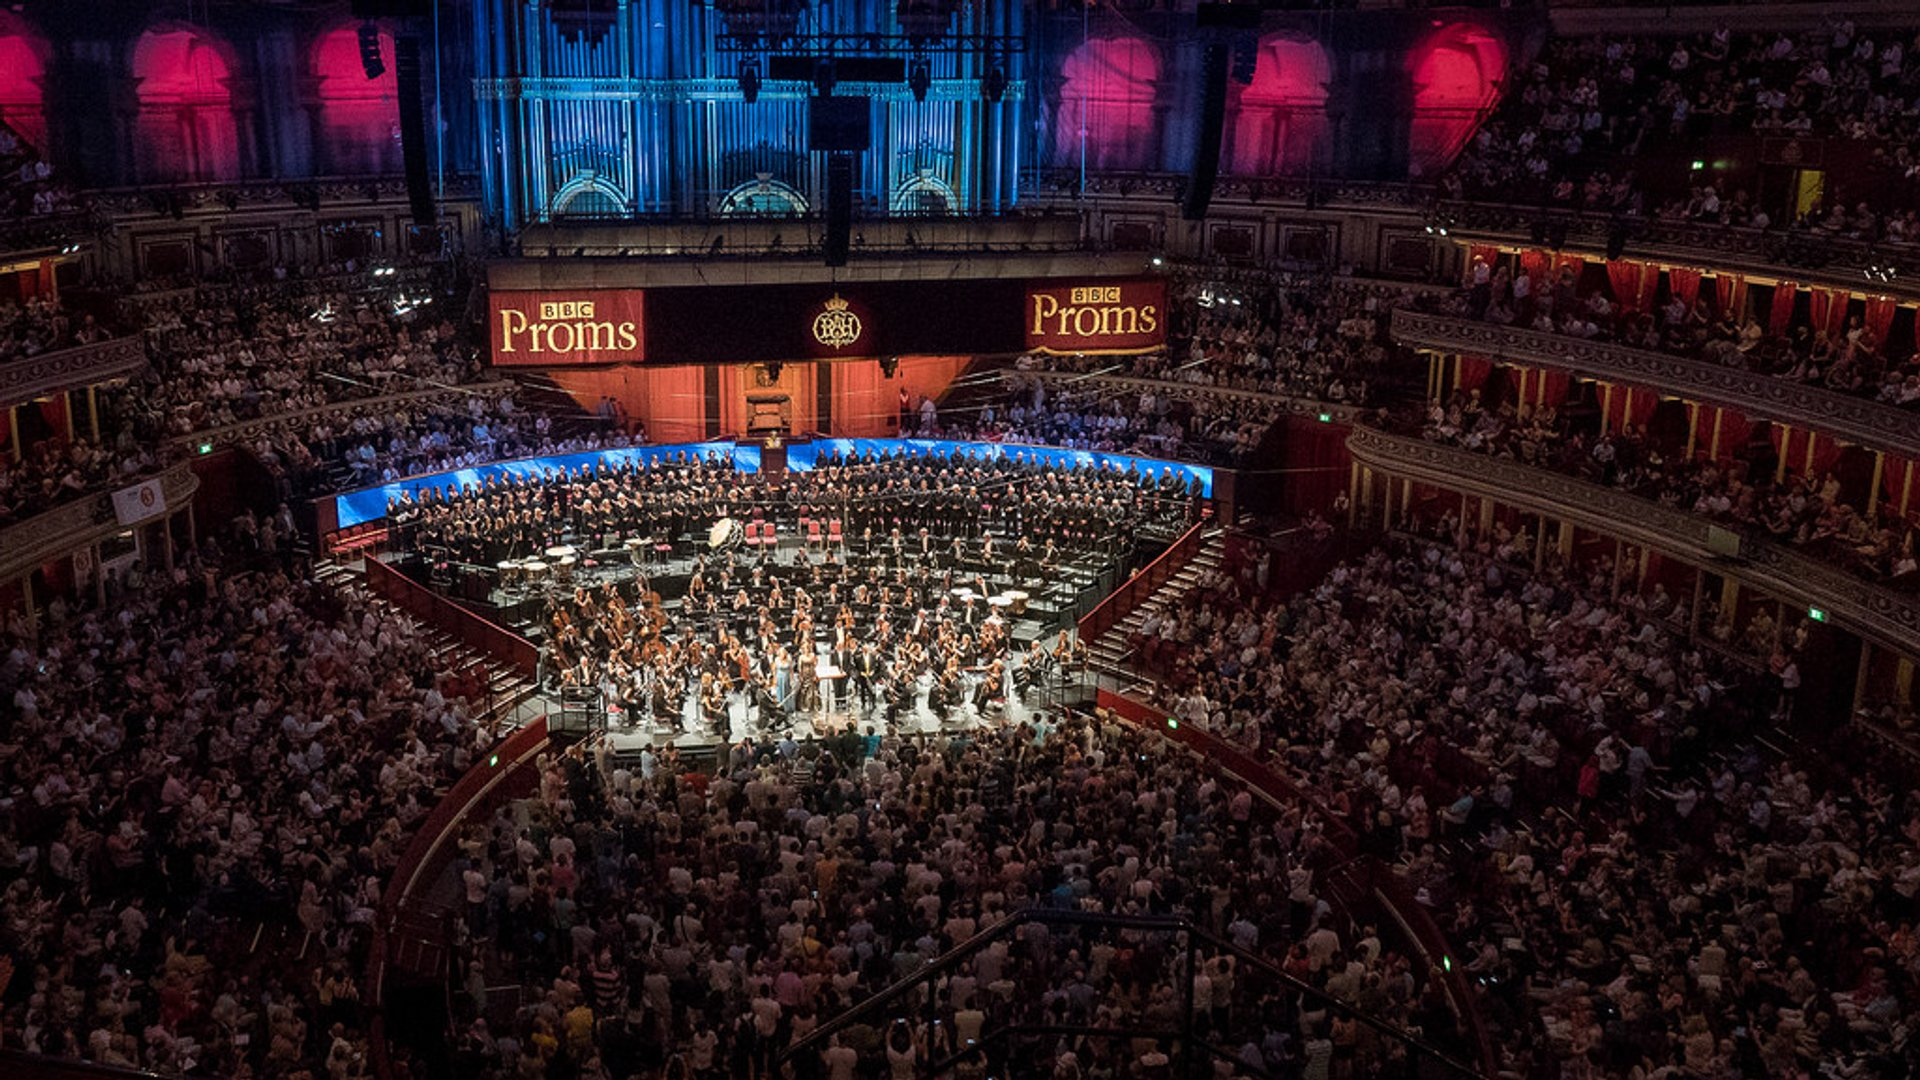 BBC Proms in London 2019 - Best Time